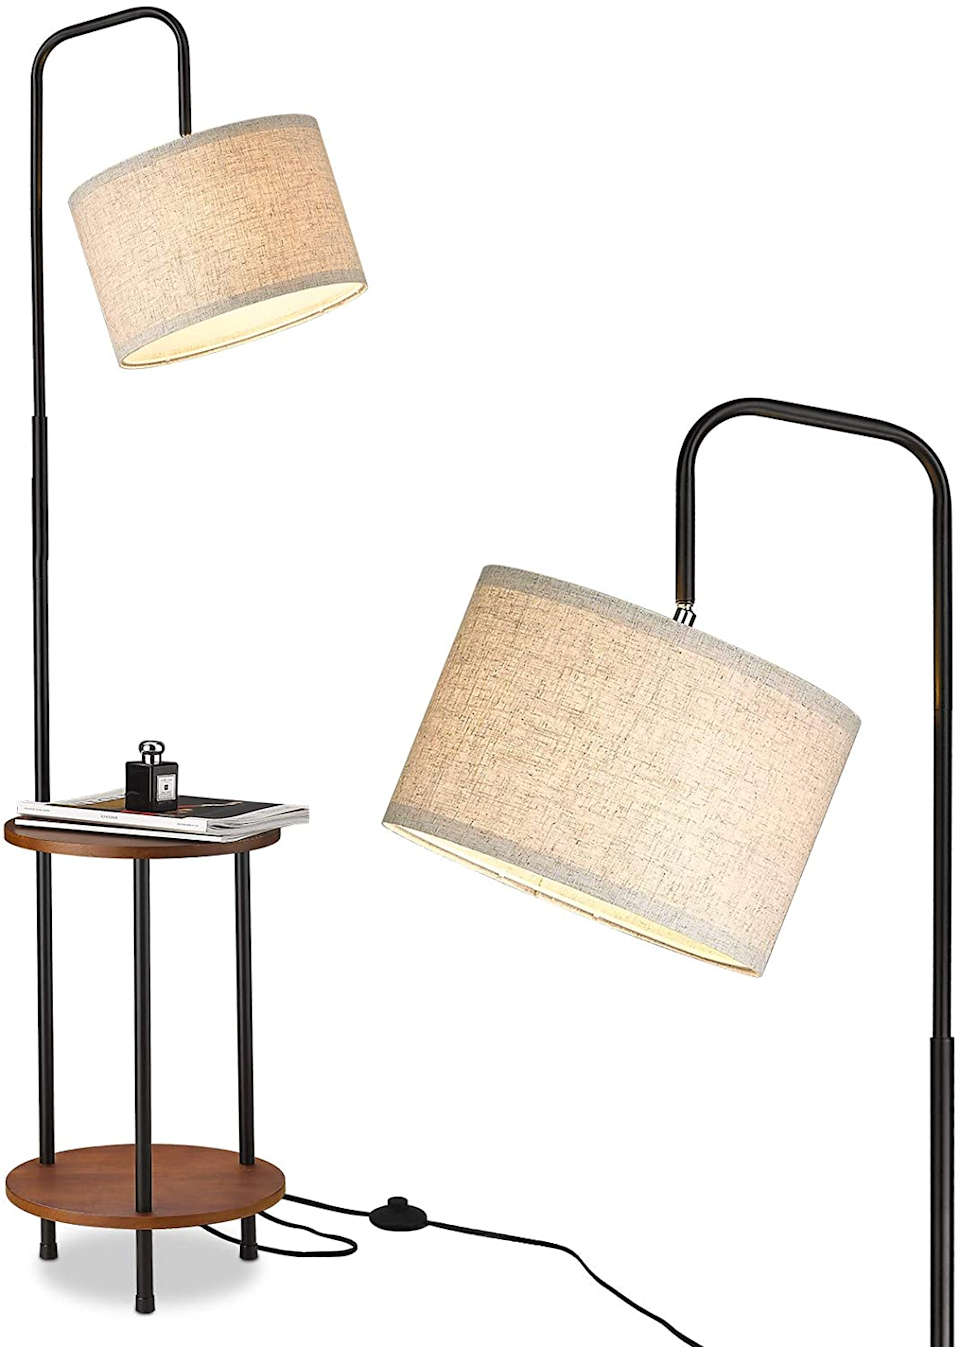 "<h3><a href=""https://amzn.to/3oOZQvE"" rel=""nofollow noopener"" target=""_blank"" data-ylk=""slk:Elyona Floor Lamp With End Table"" class=""link rapid-noclick-resp"">Elyona Floor Lamp With End Table</a></h3> <br><strong>When your tiny apartment is also a dark tiny apartment</strong>: Allow this stylish lamp to light up your dark apartment while also playing the double-duty role of living room storage unit and side table.<br><br><strong>Elyona</strong> Floor Lamp With End Table, $, available at <a href=""https://amzn.to/3oOZQvE"" rel=""nofollow noopener"" target=""_blank"" data-ylk=""slk:Amazon"" class=""link rapid-noclick-resp"">Amazon</a>"